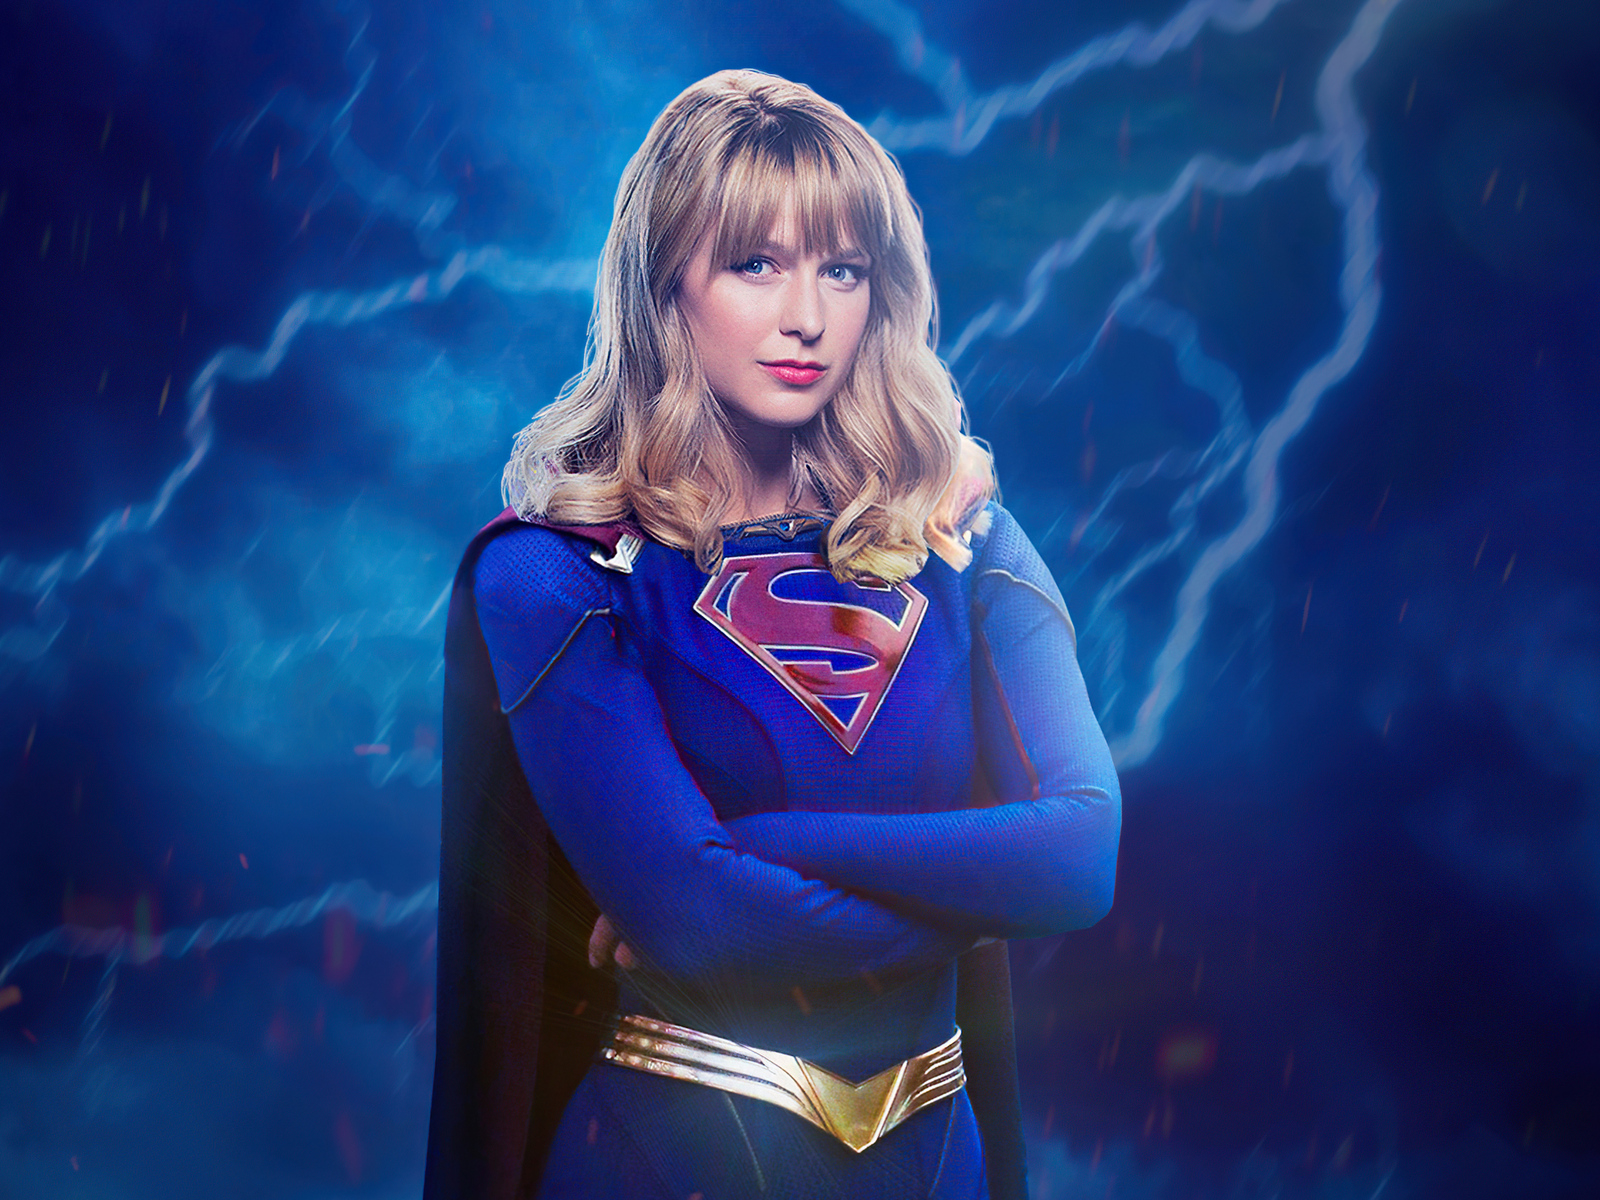 supergirl-warrior-girl-4k-2g.jpg